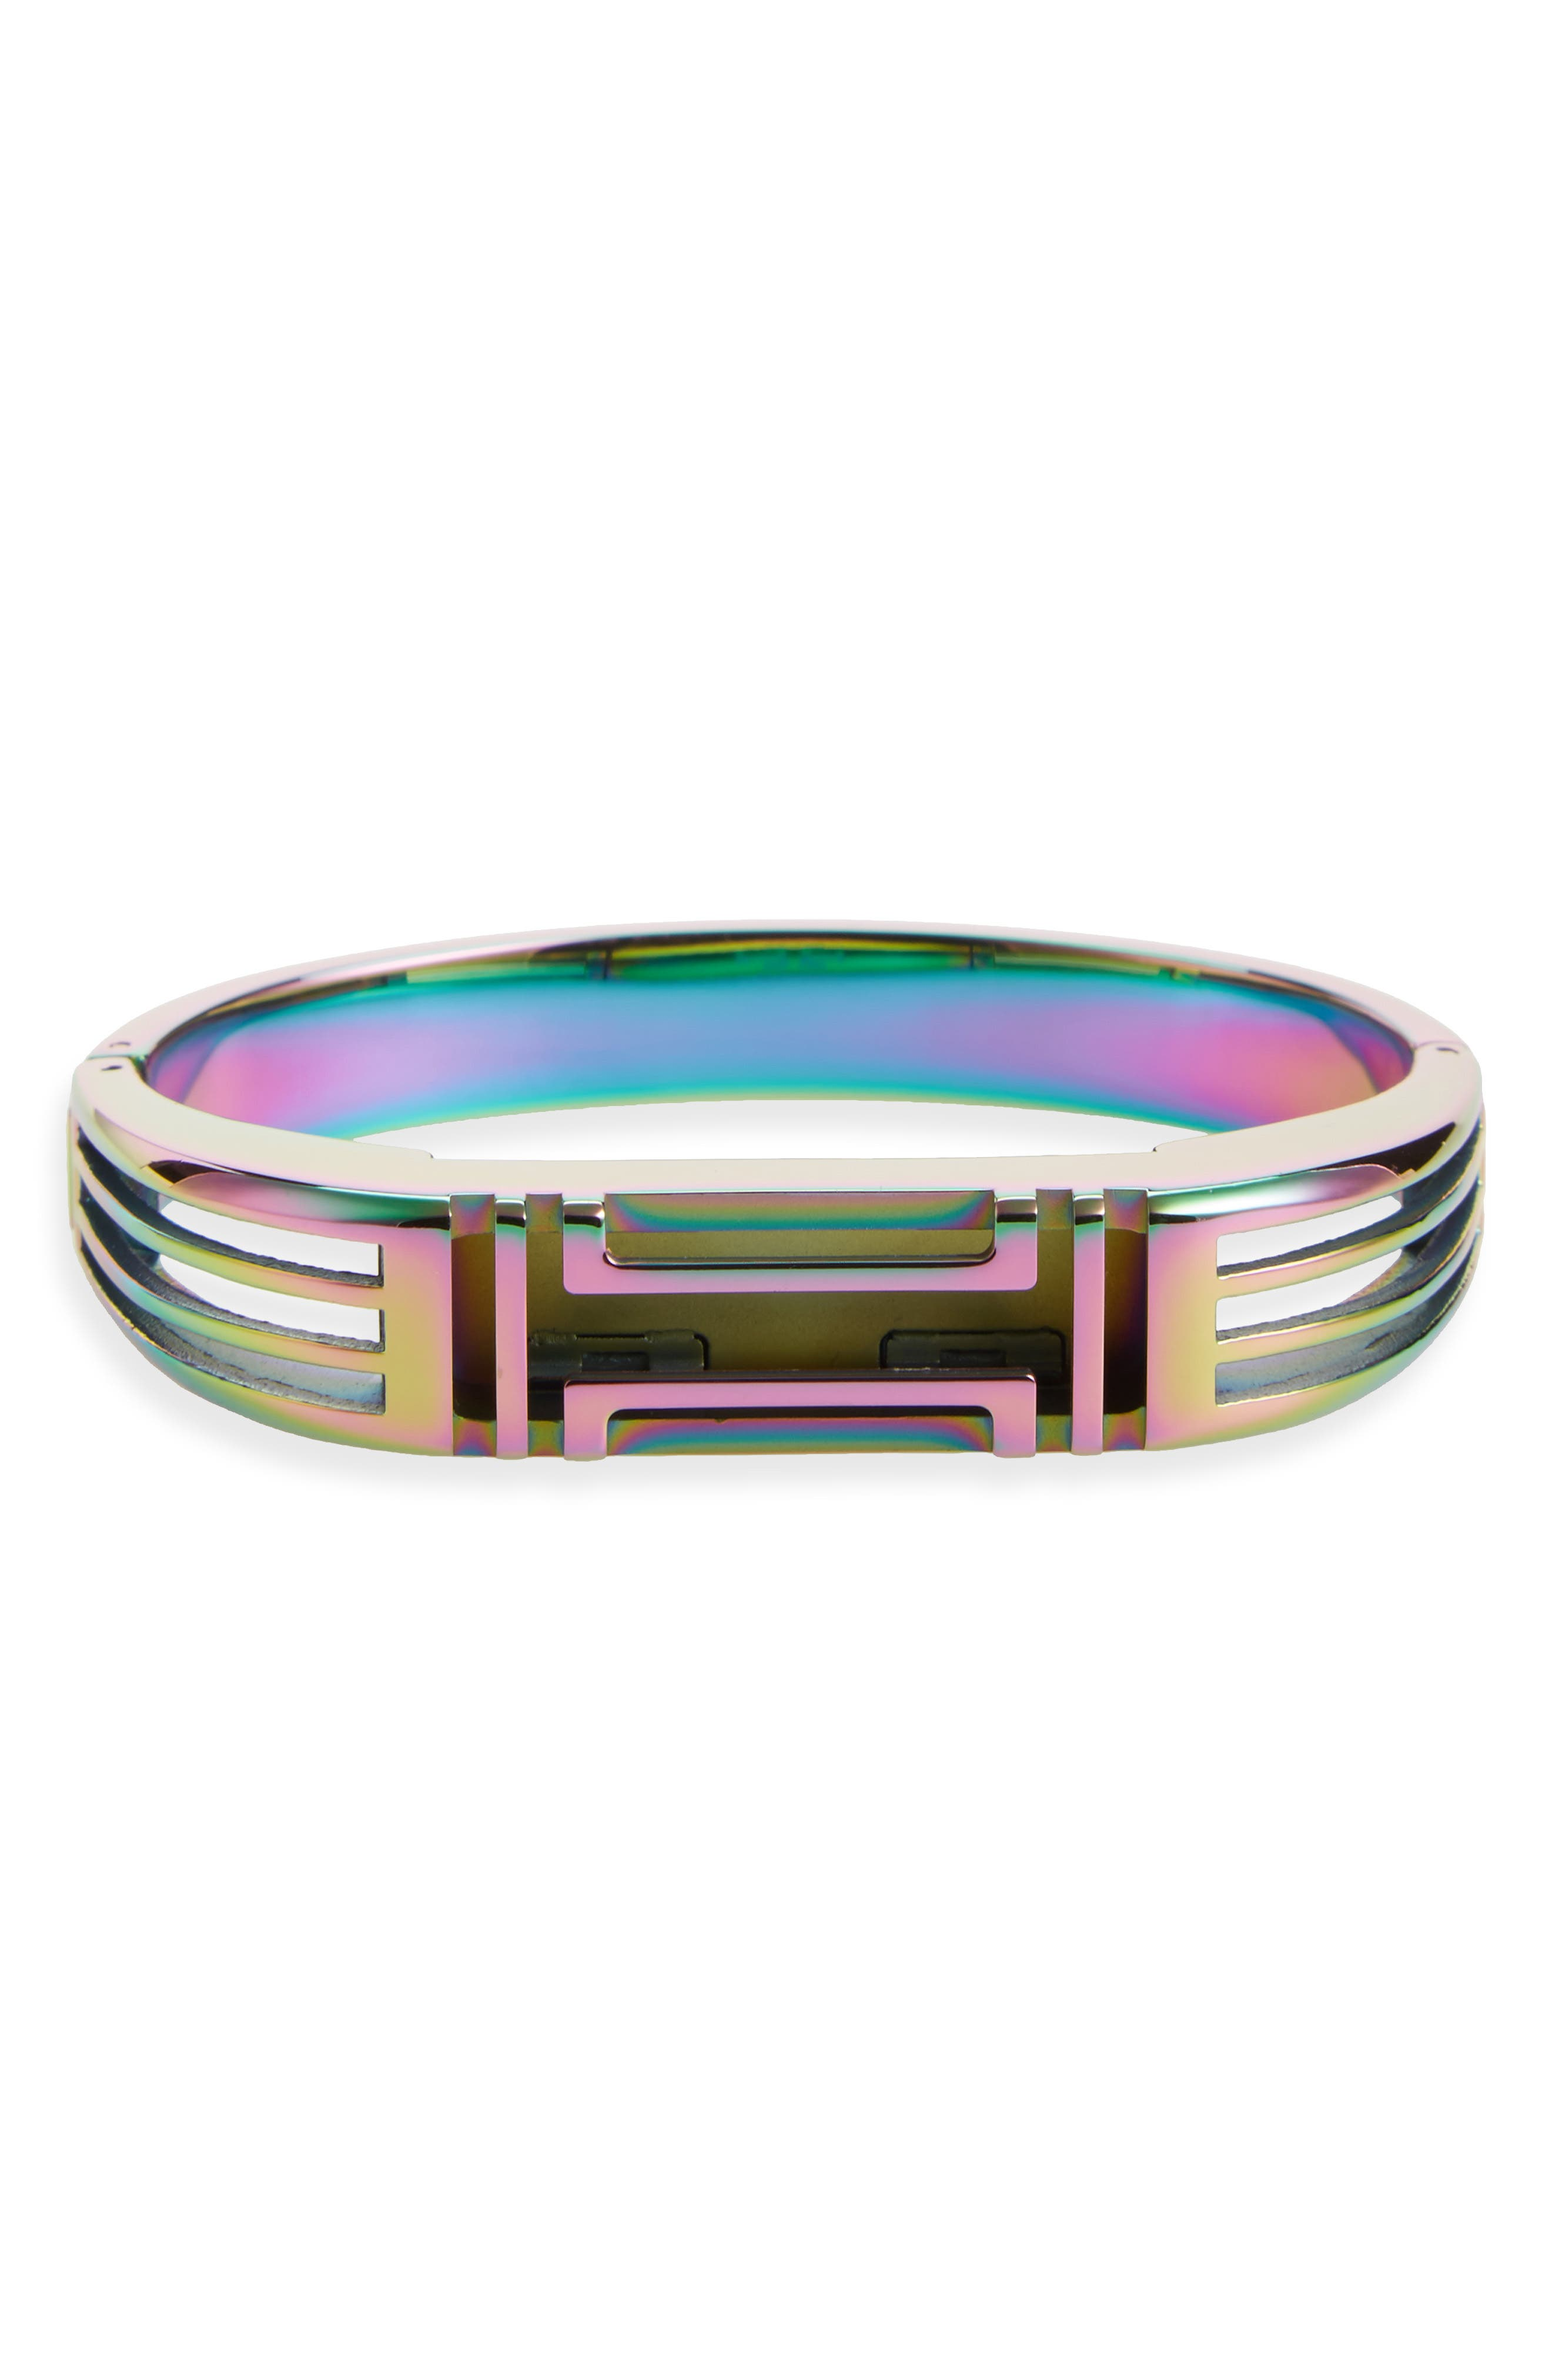 Main Image - Tory Burch for Fitbit® Hinge Bracelet